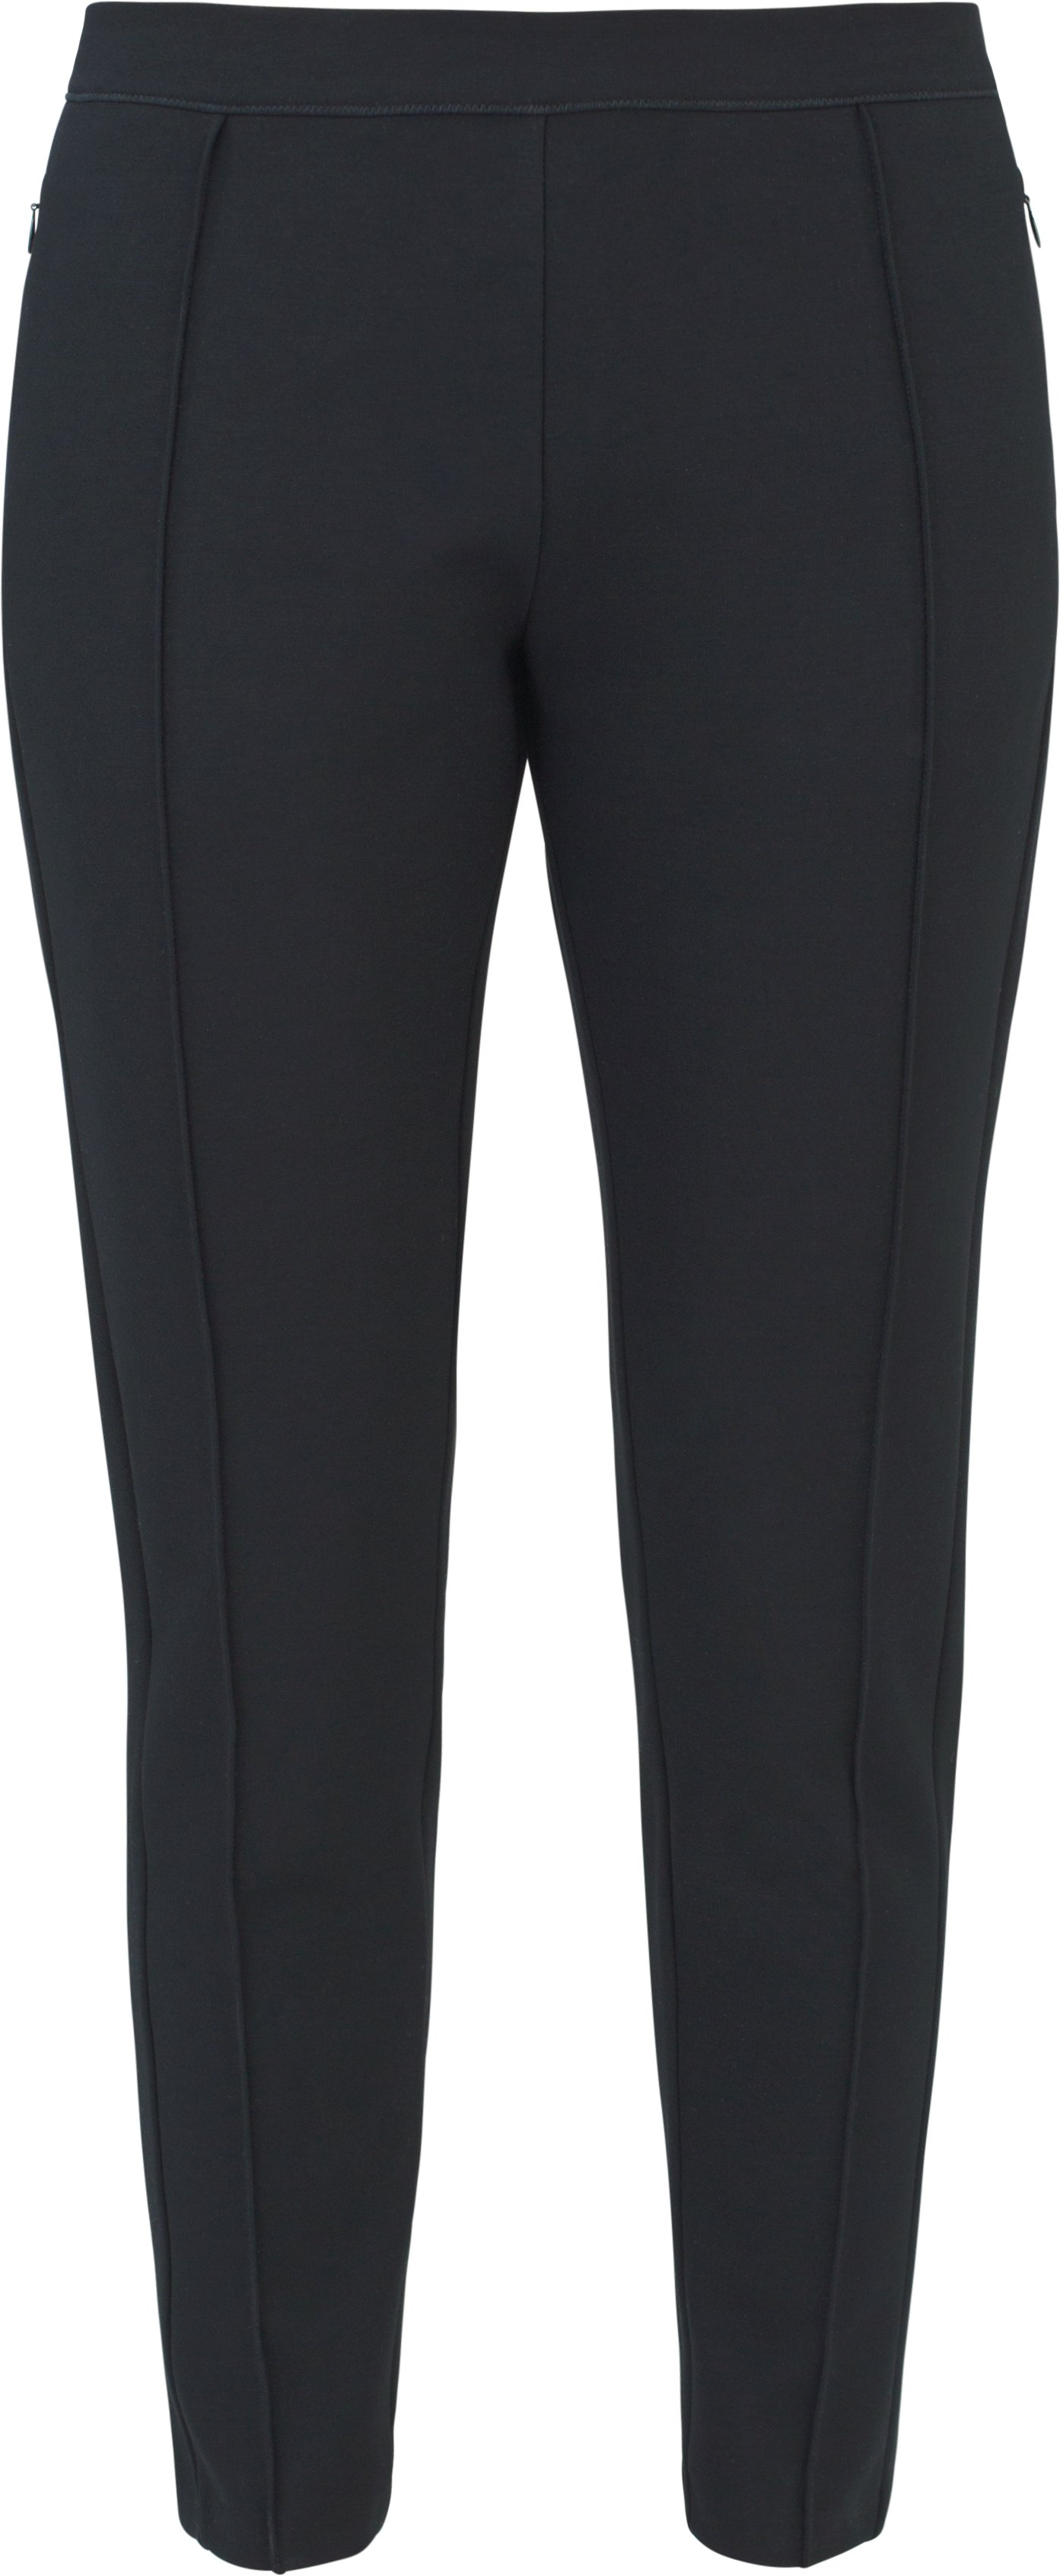 Women's UAS Knit Pull-On Pants, Black